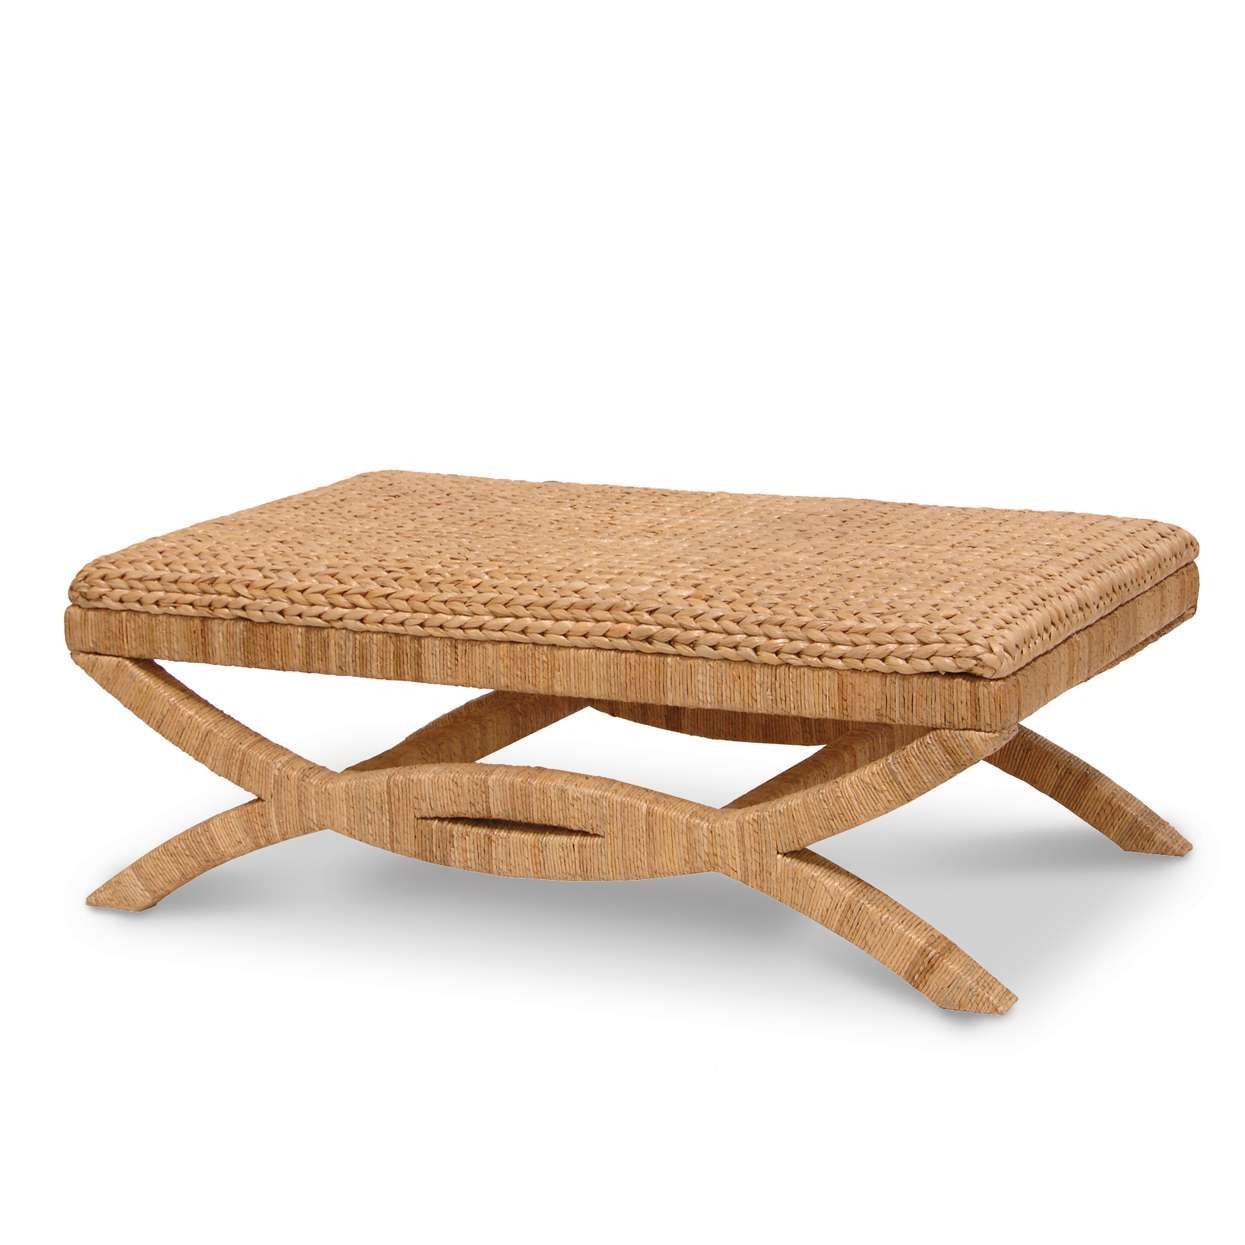 Furniture large square seagrass coffee table simple design as soleil havana coffee table woven seagrass top coffee table with seagrass rope legs geotapseo Gallery